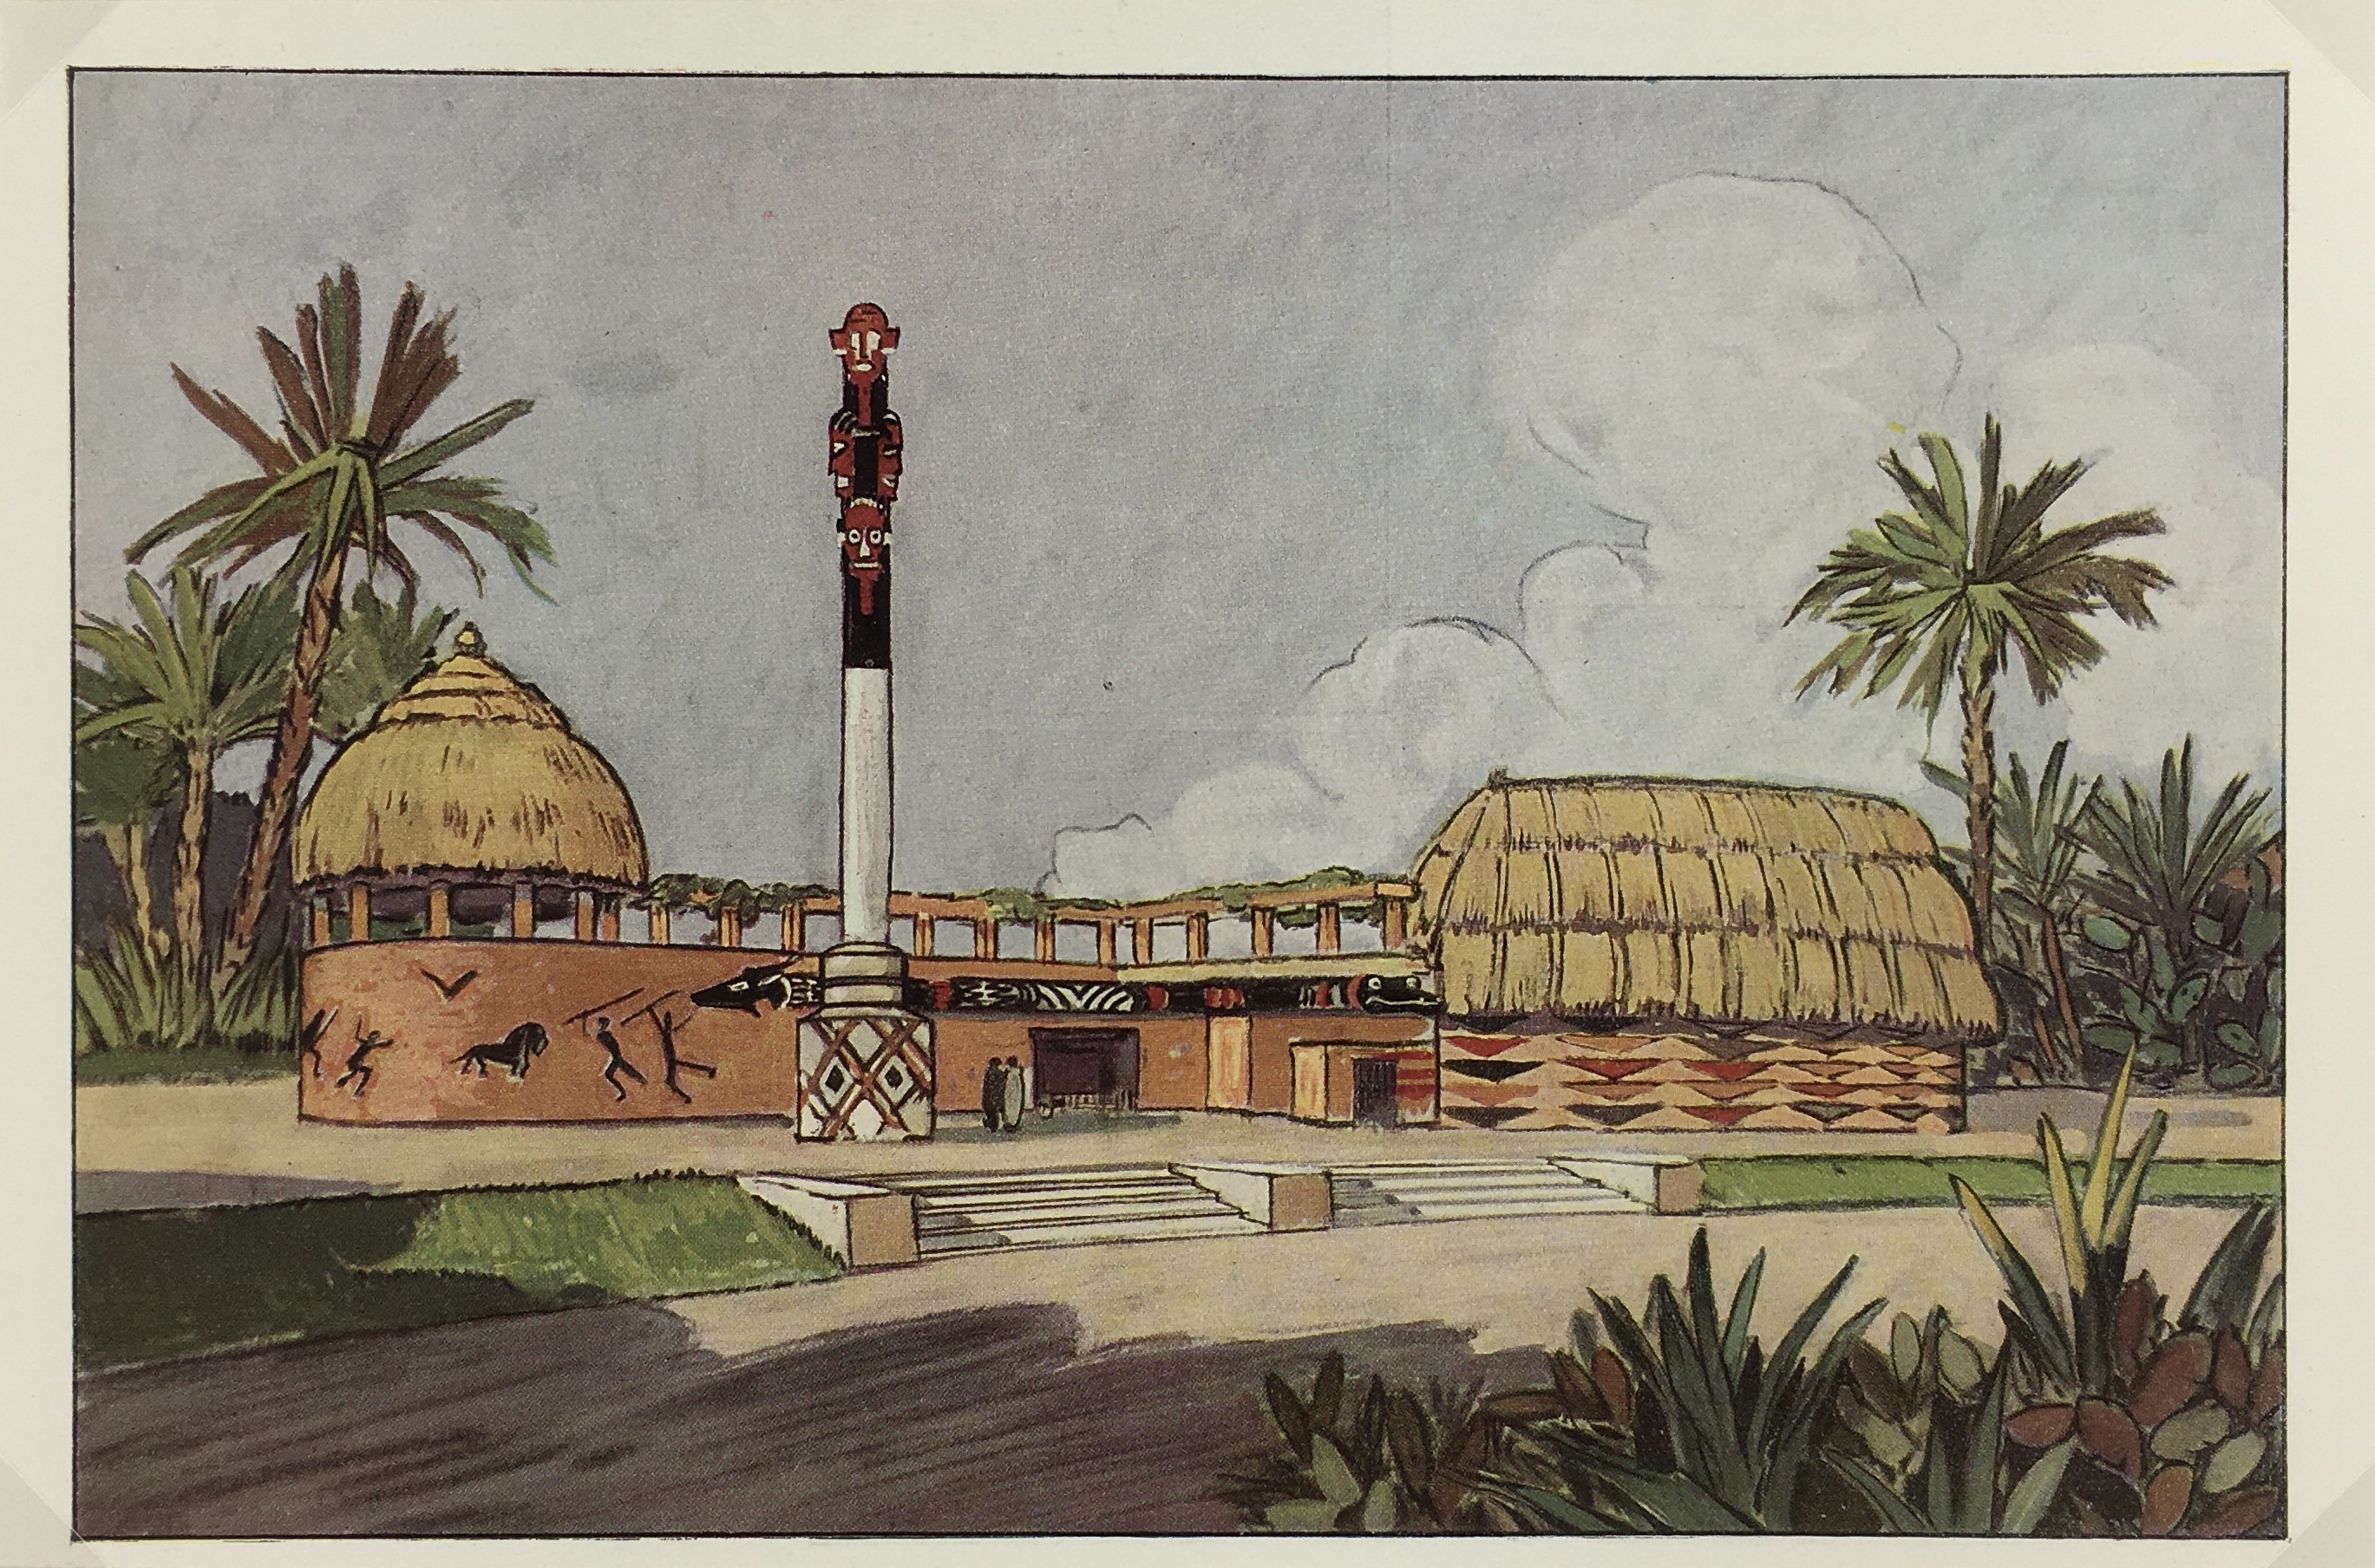 Architecture Print - Africa, L'Illustration, c.1930